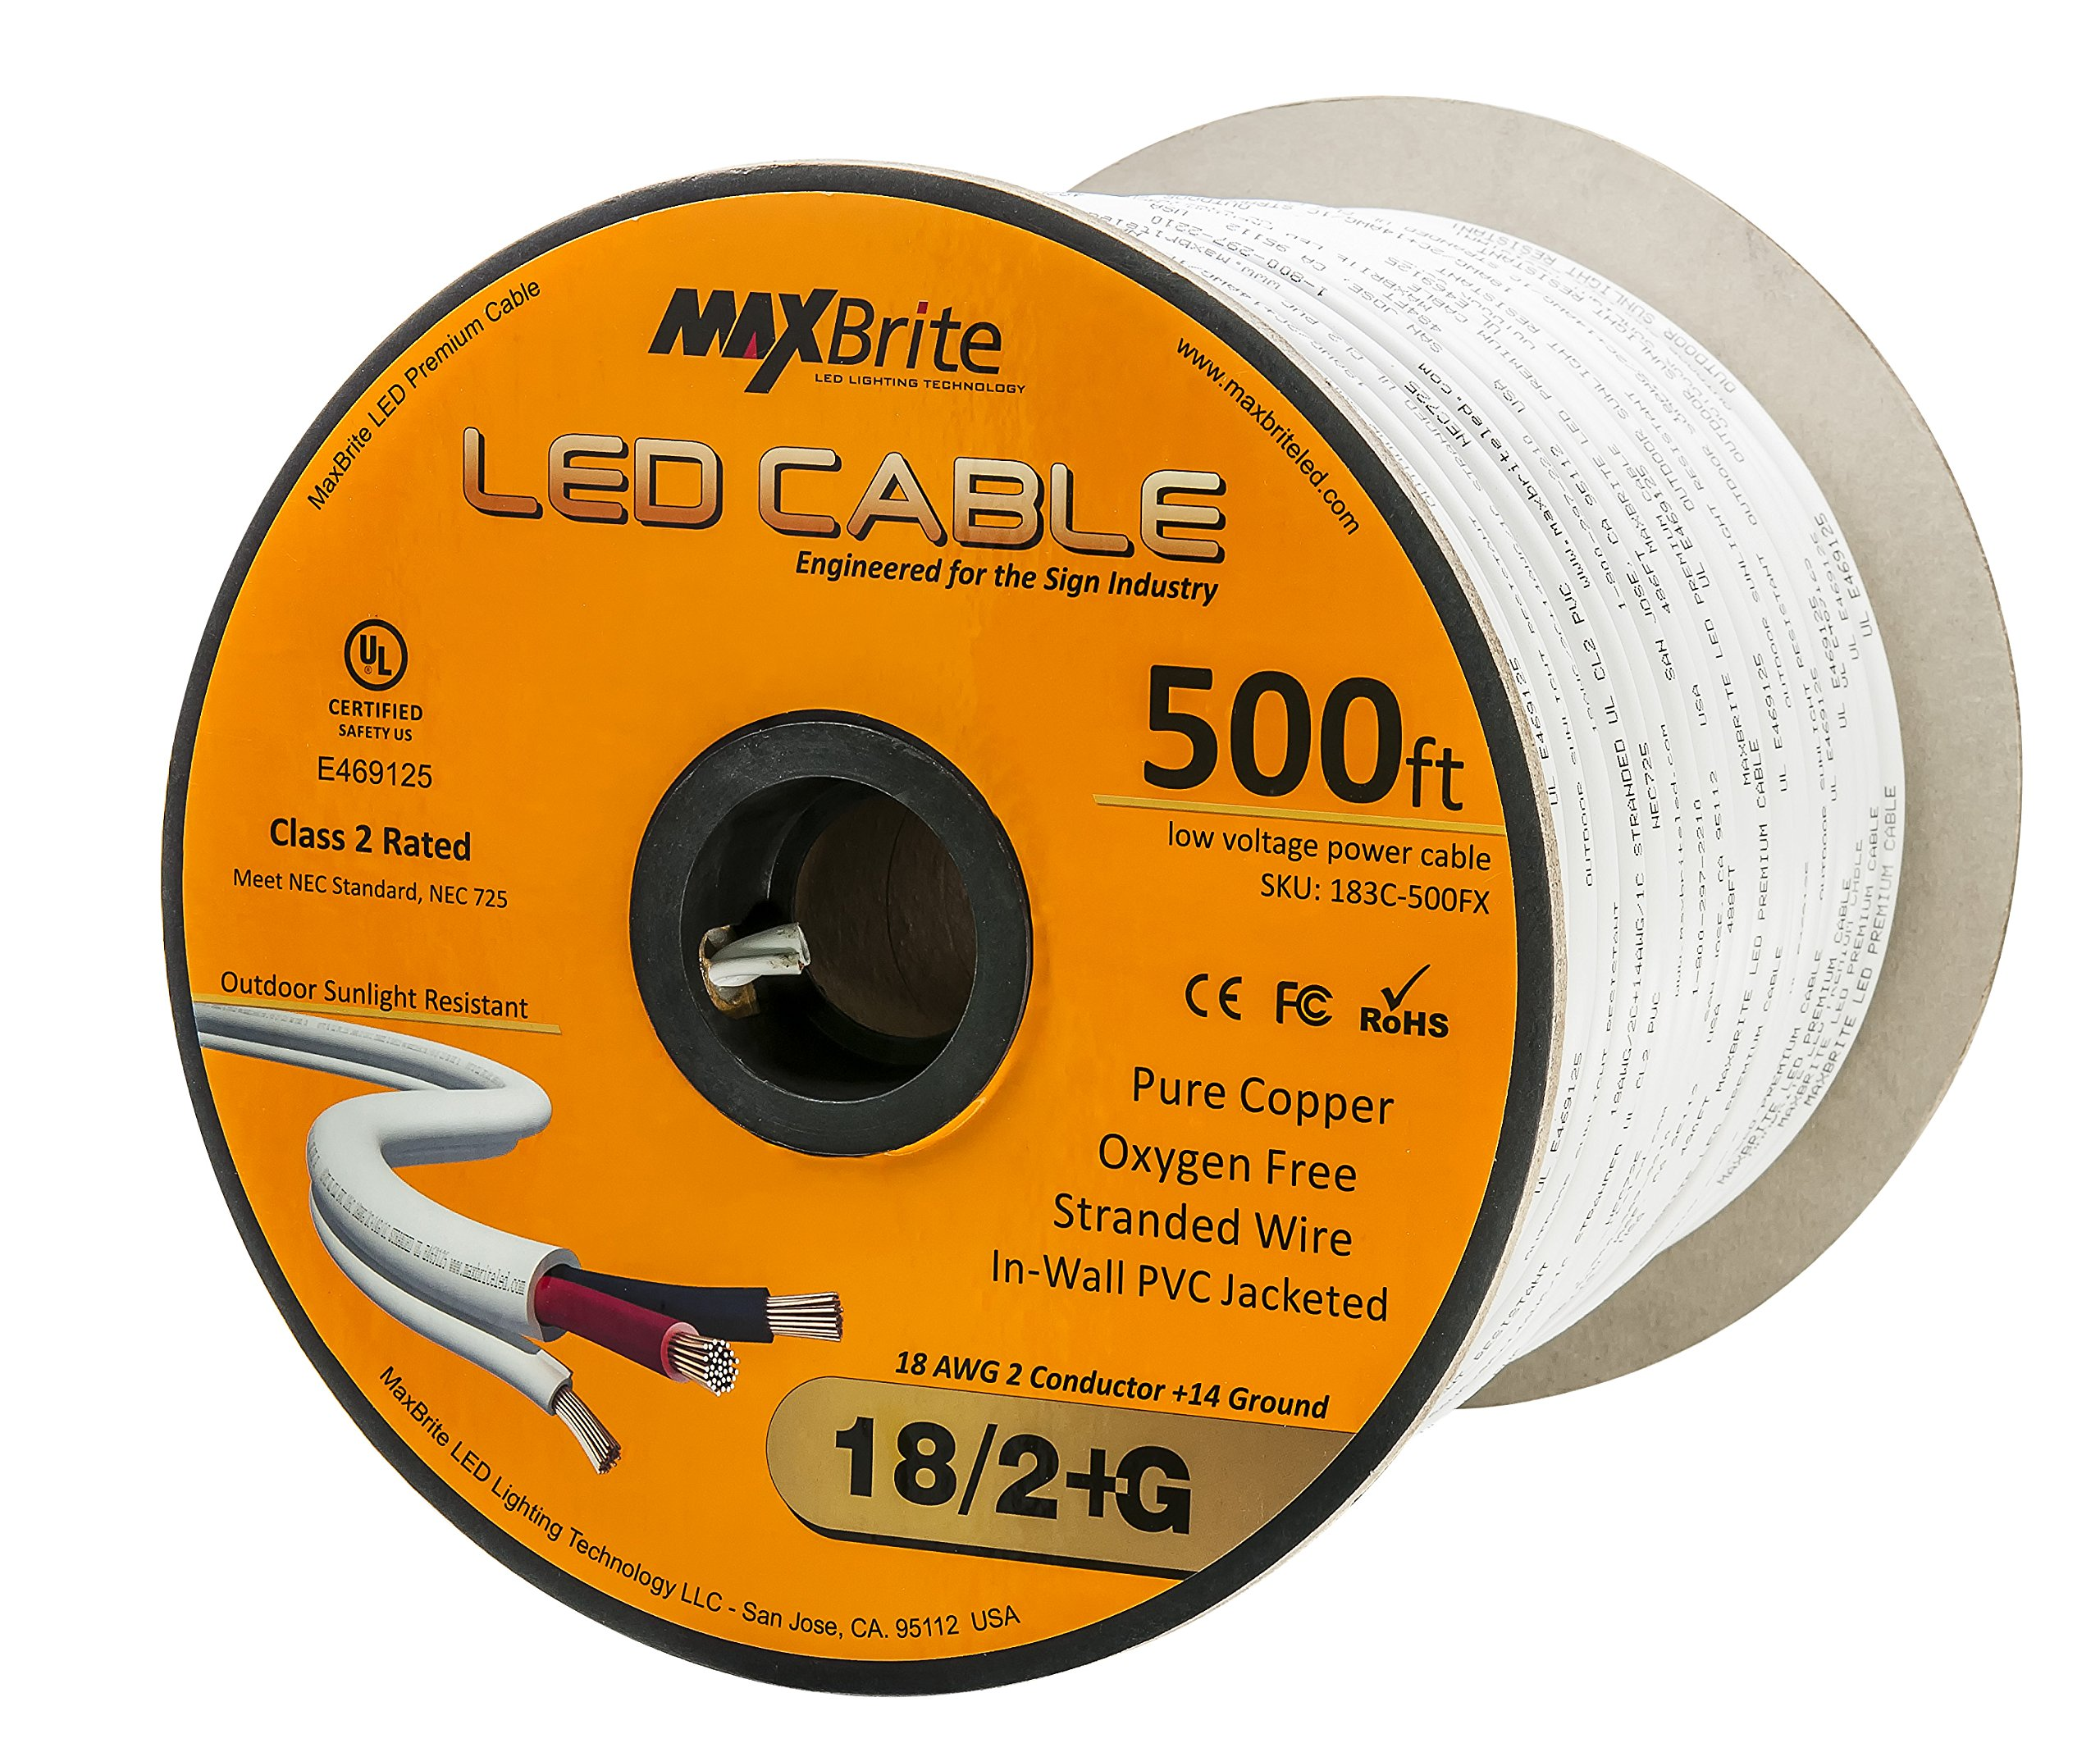 18AWG Low Voltage LED Cable, 3 Conductor, Outdoor Rated, Jacketed In-Wall Speaker Wire UL/cUL Class 2, Sunlight Resistant (500ft) by US LED Superstore